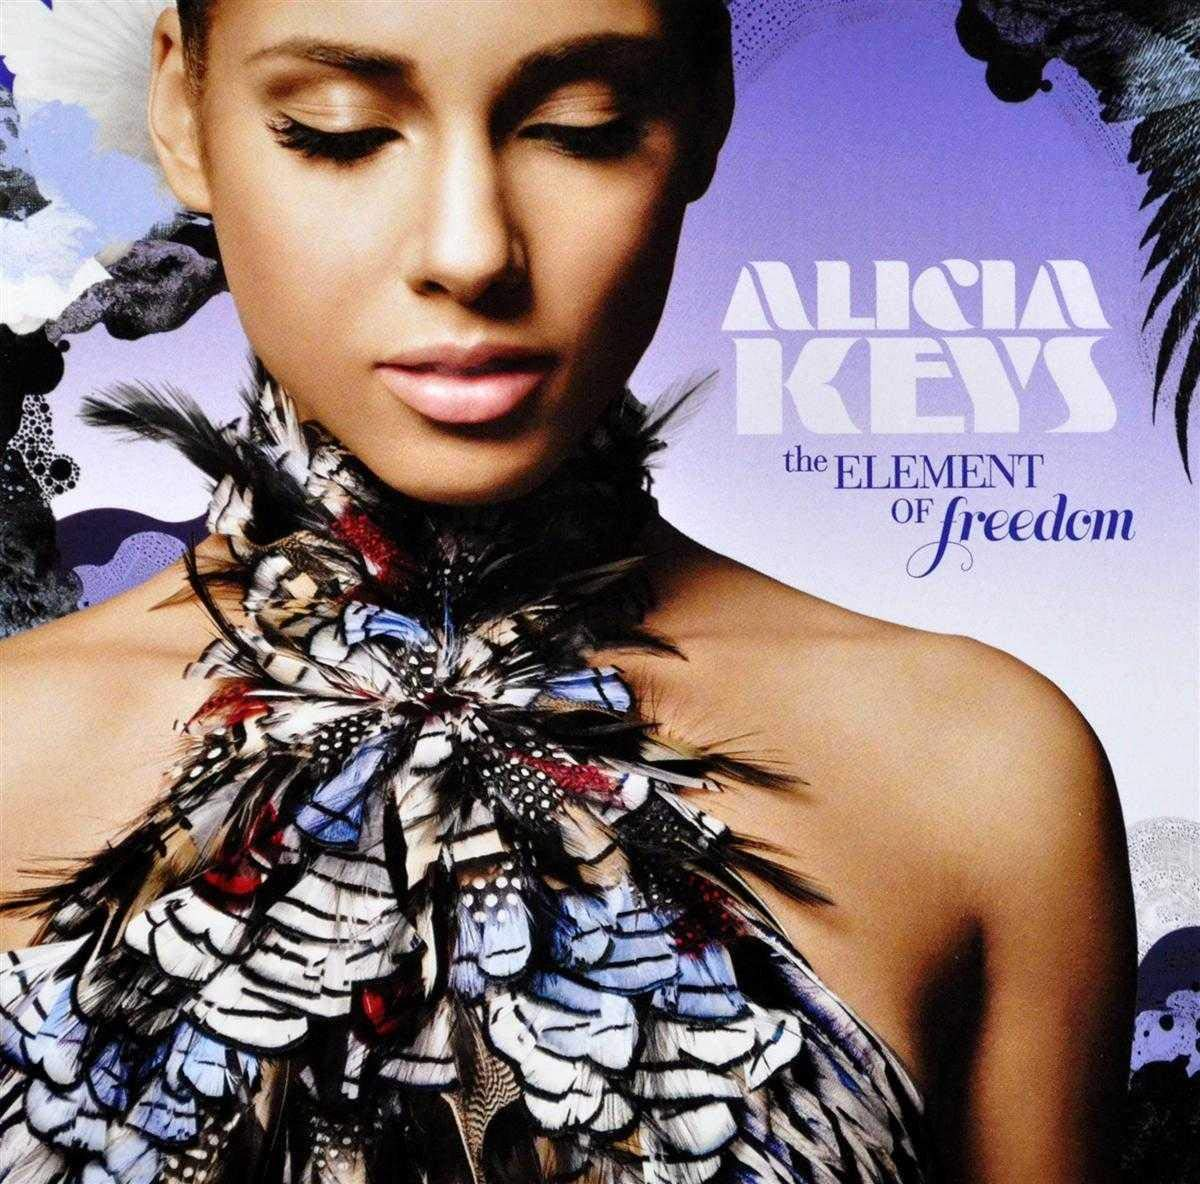 Alicia Keys, The Element of Freedom